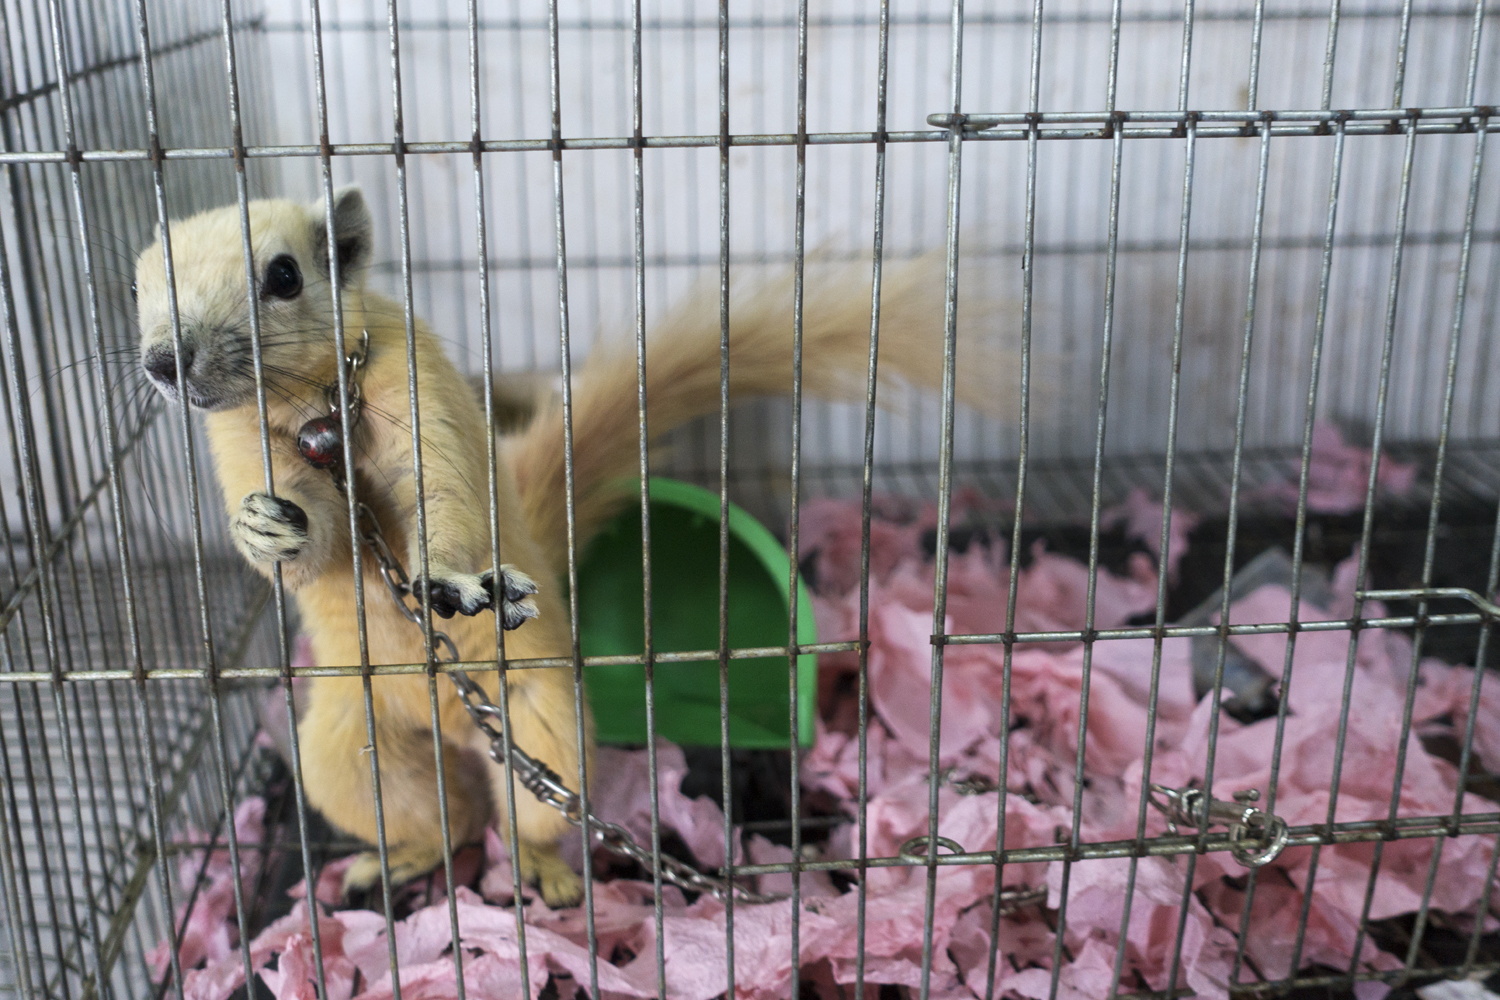 - A squirrel chained in a cage in Chatuchak Market. Squirrels are a very popular pet in Thailand.